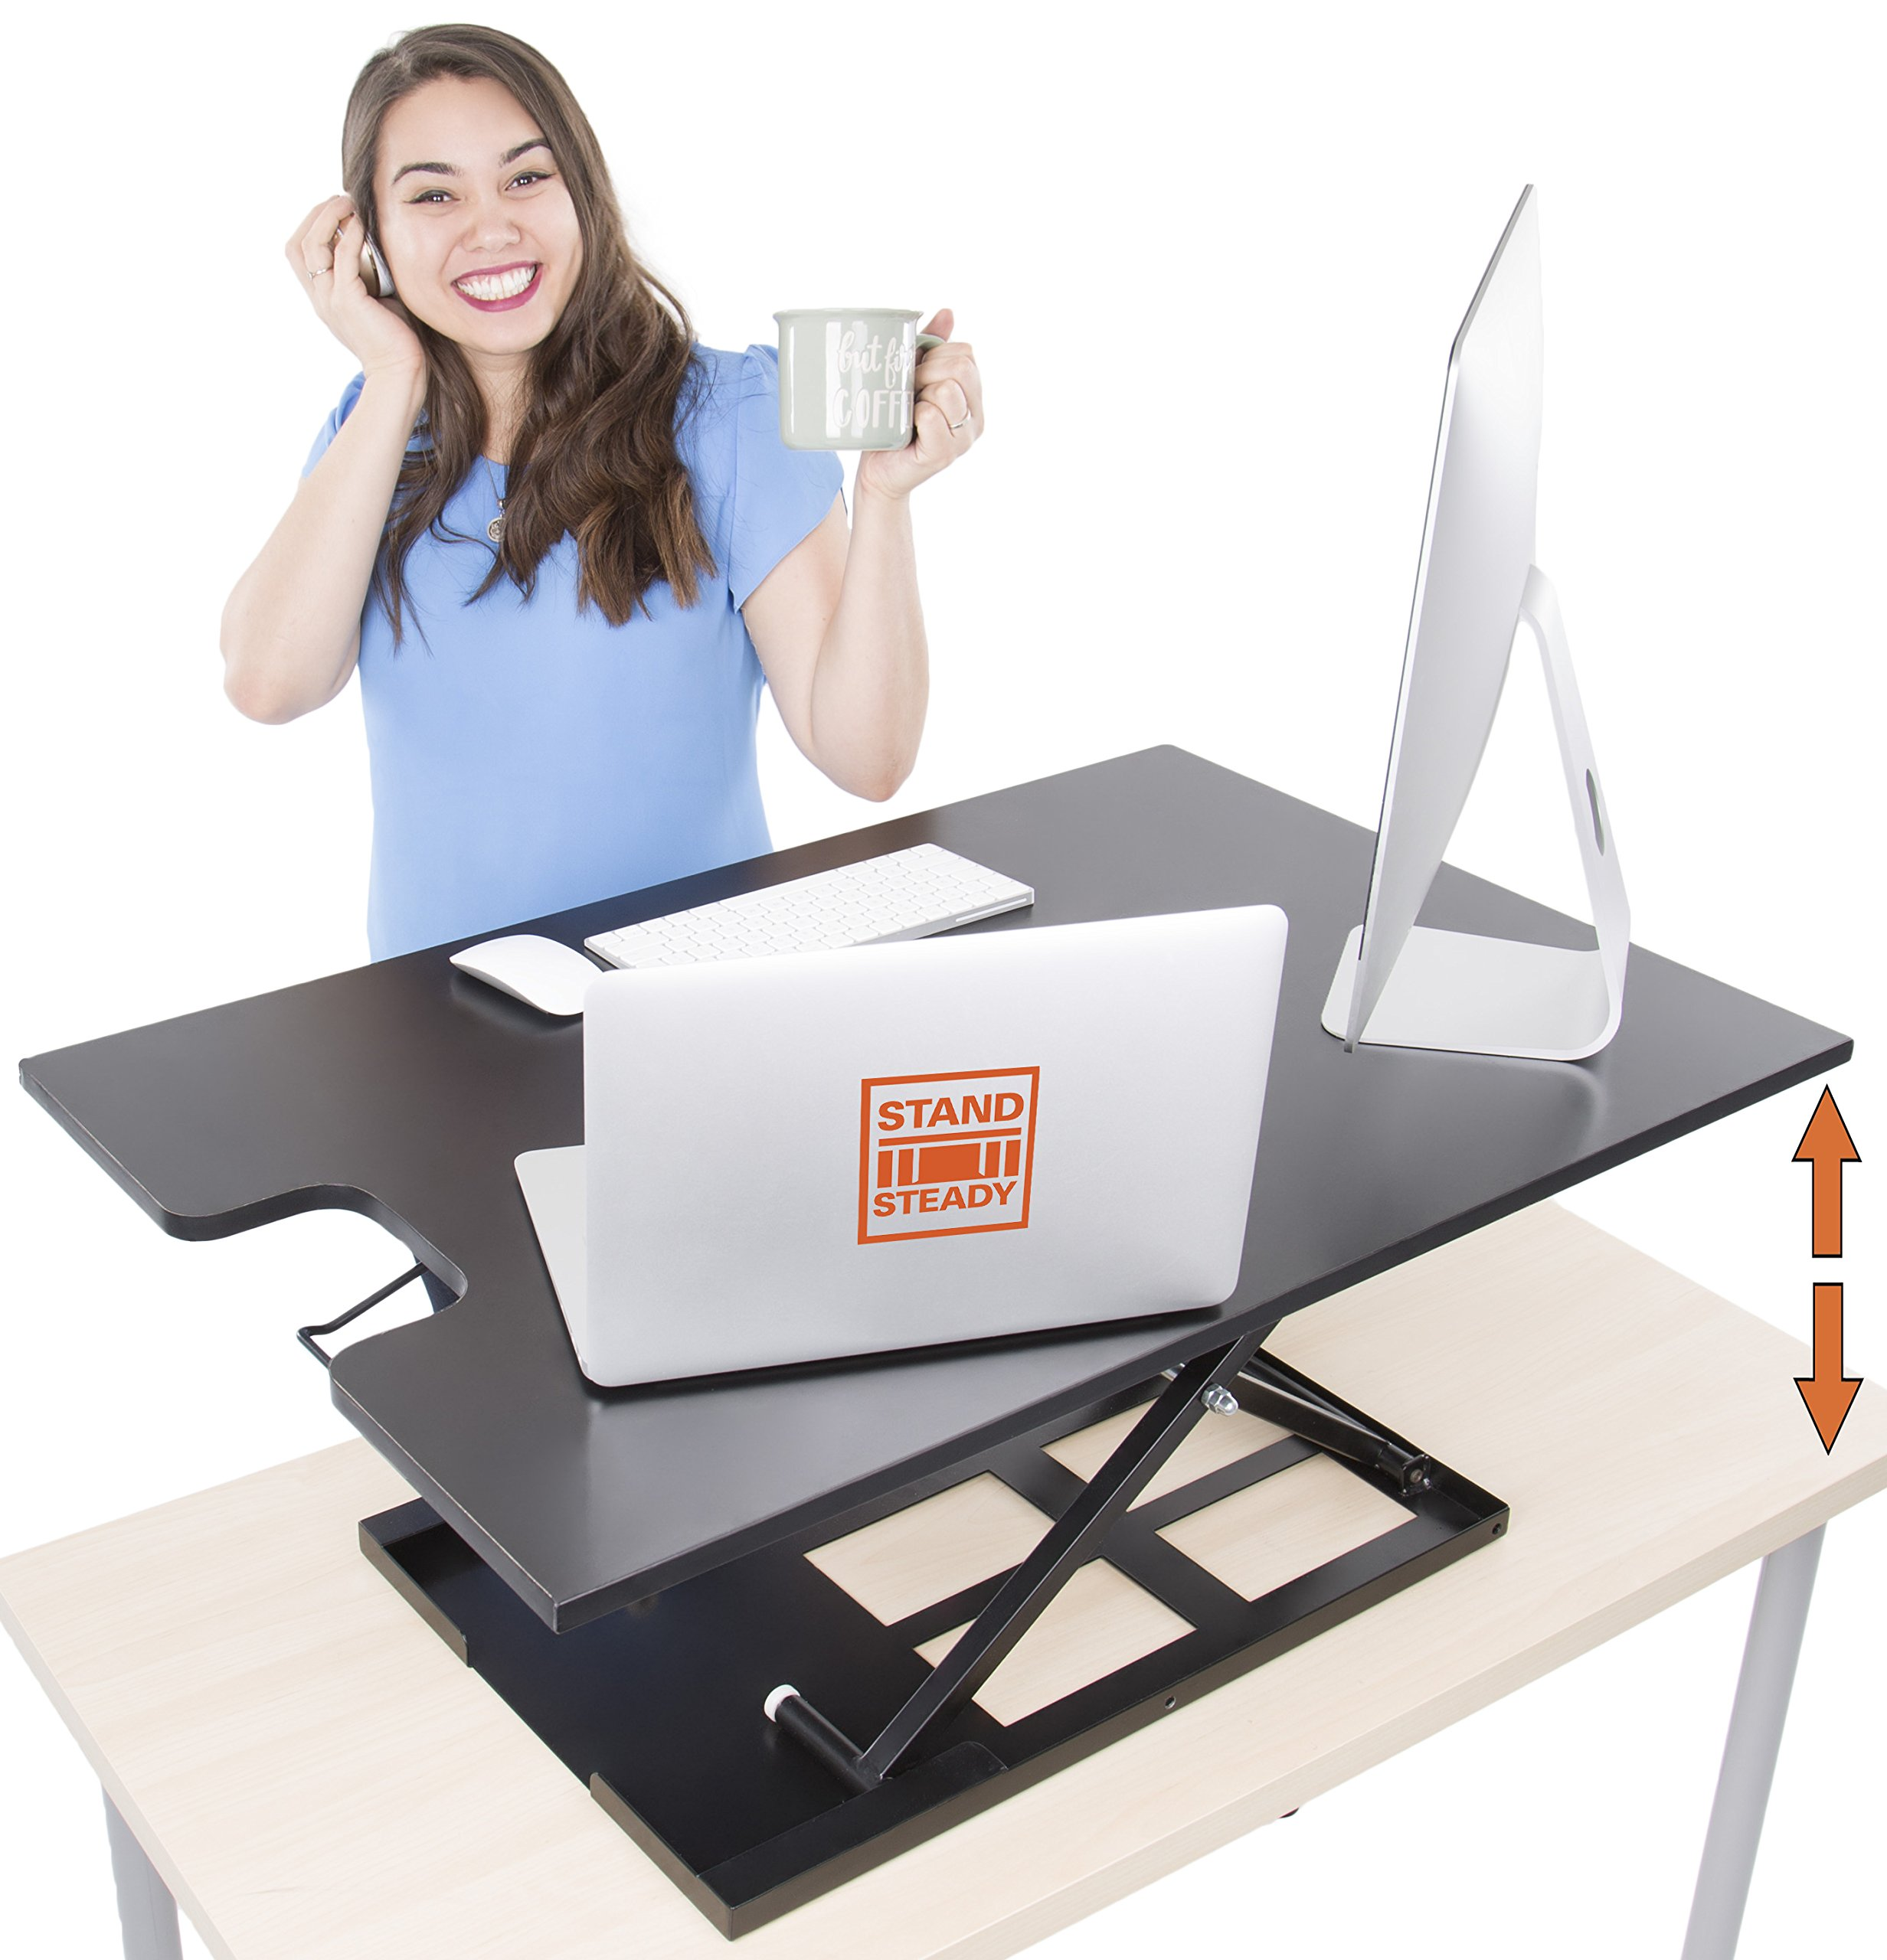 X-Elite Pro XL Standing Desk - Instantly Convert Any Surface to a Stand up Desk! Extra Large Surface Sit to Stand Desk Converter - Easily fits 2 Monitors! (X-Elite XL   36 inches   Black)